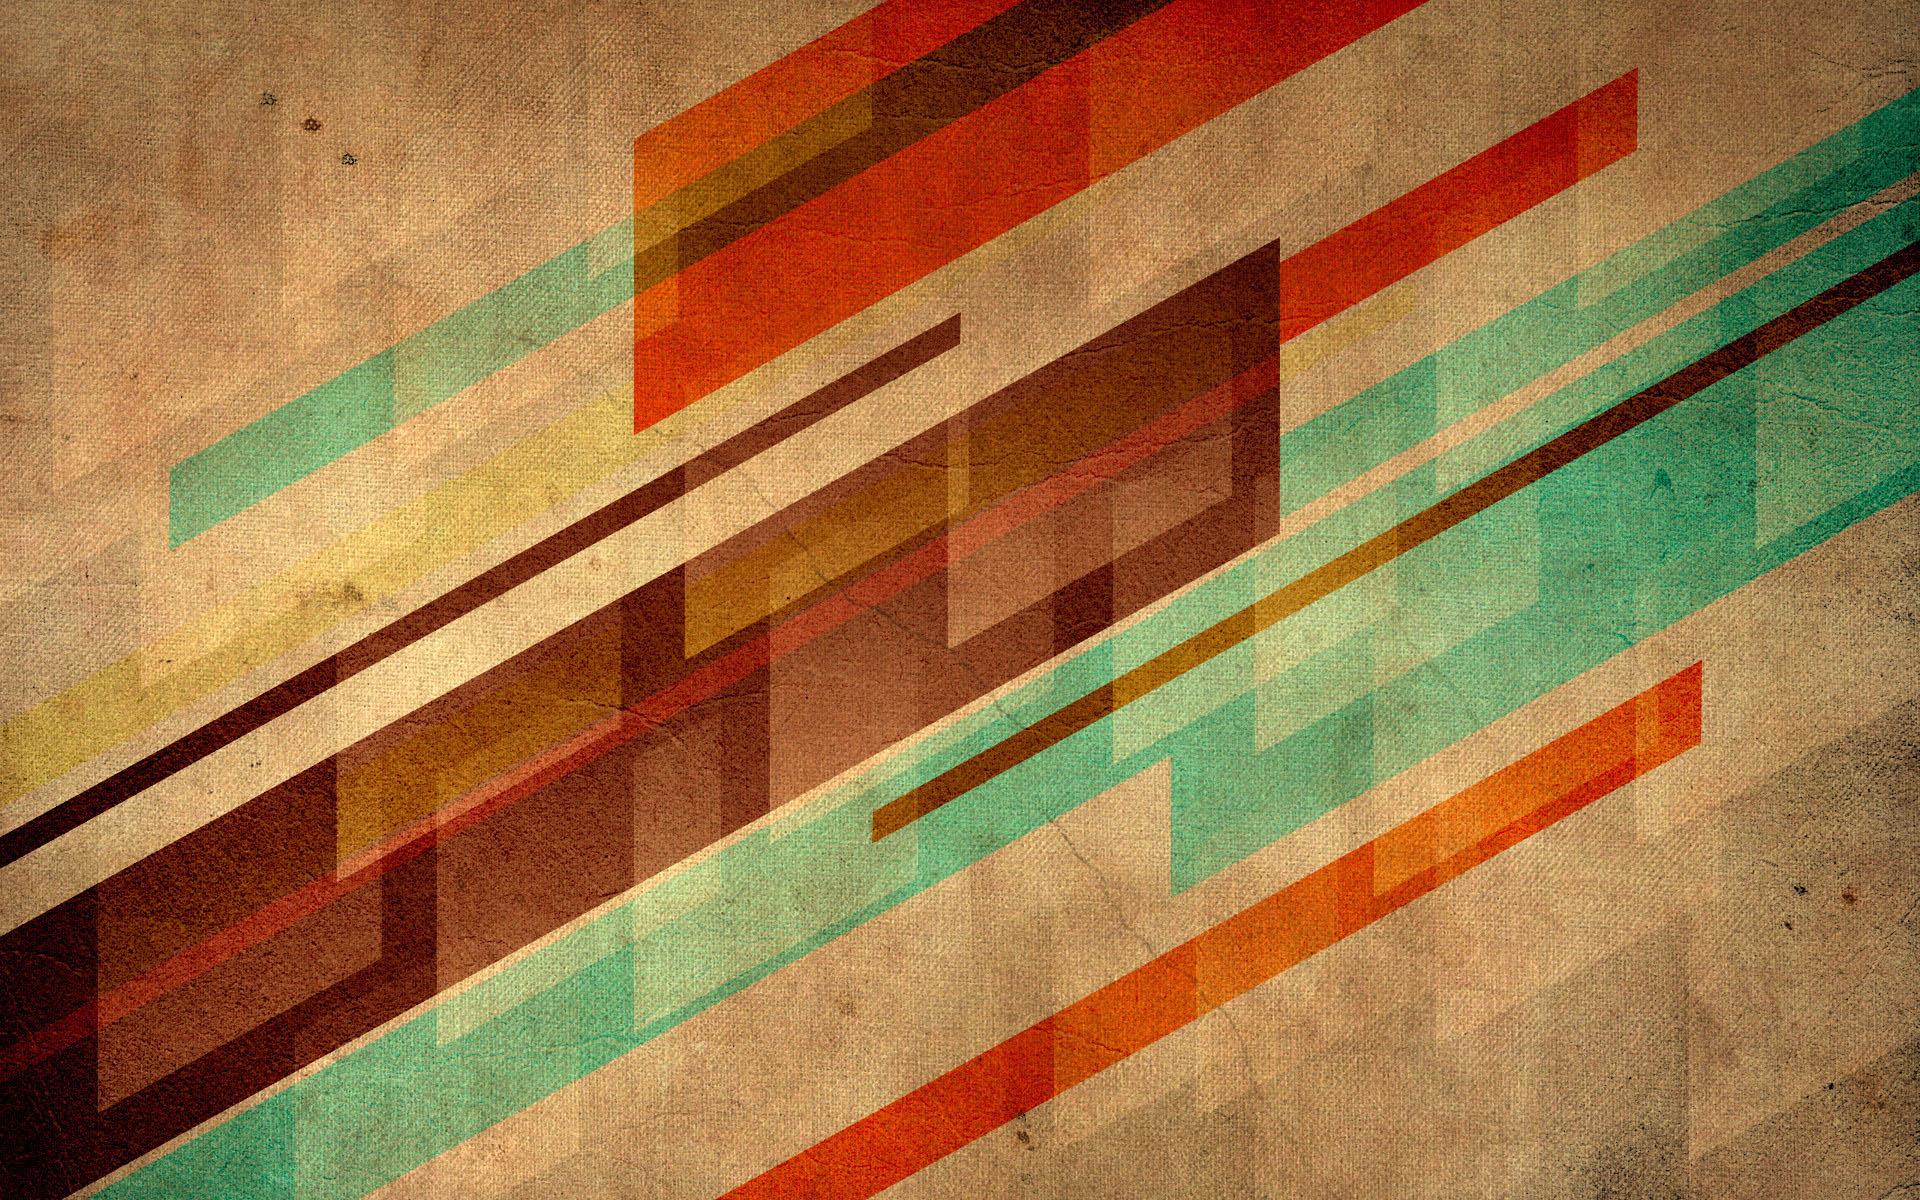 Abstract Wallpaper Mac Os X Leopard Download Wallpaper